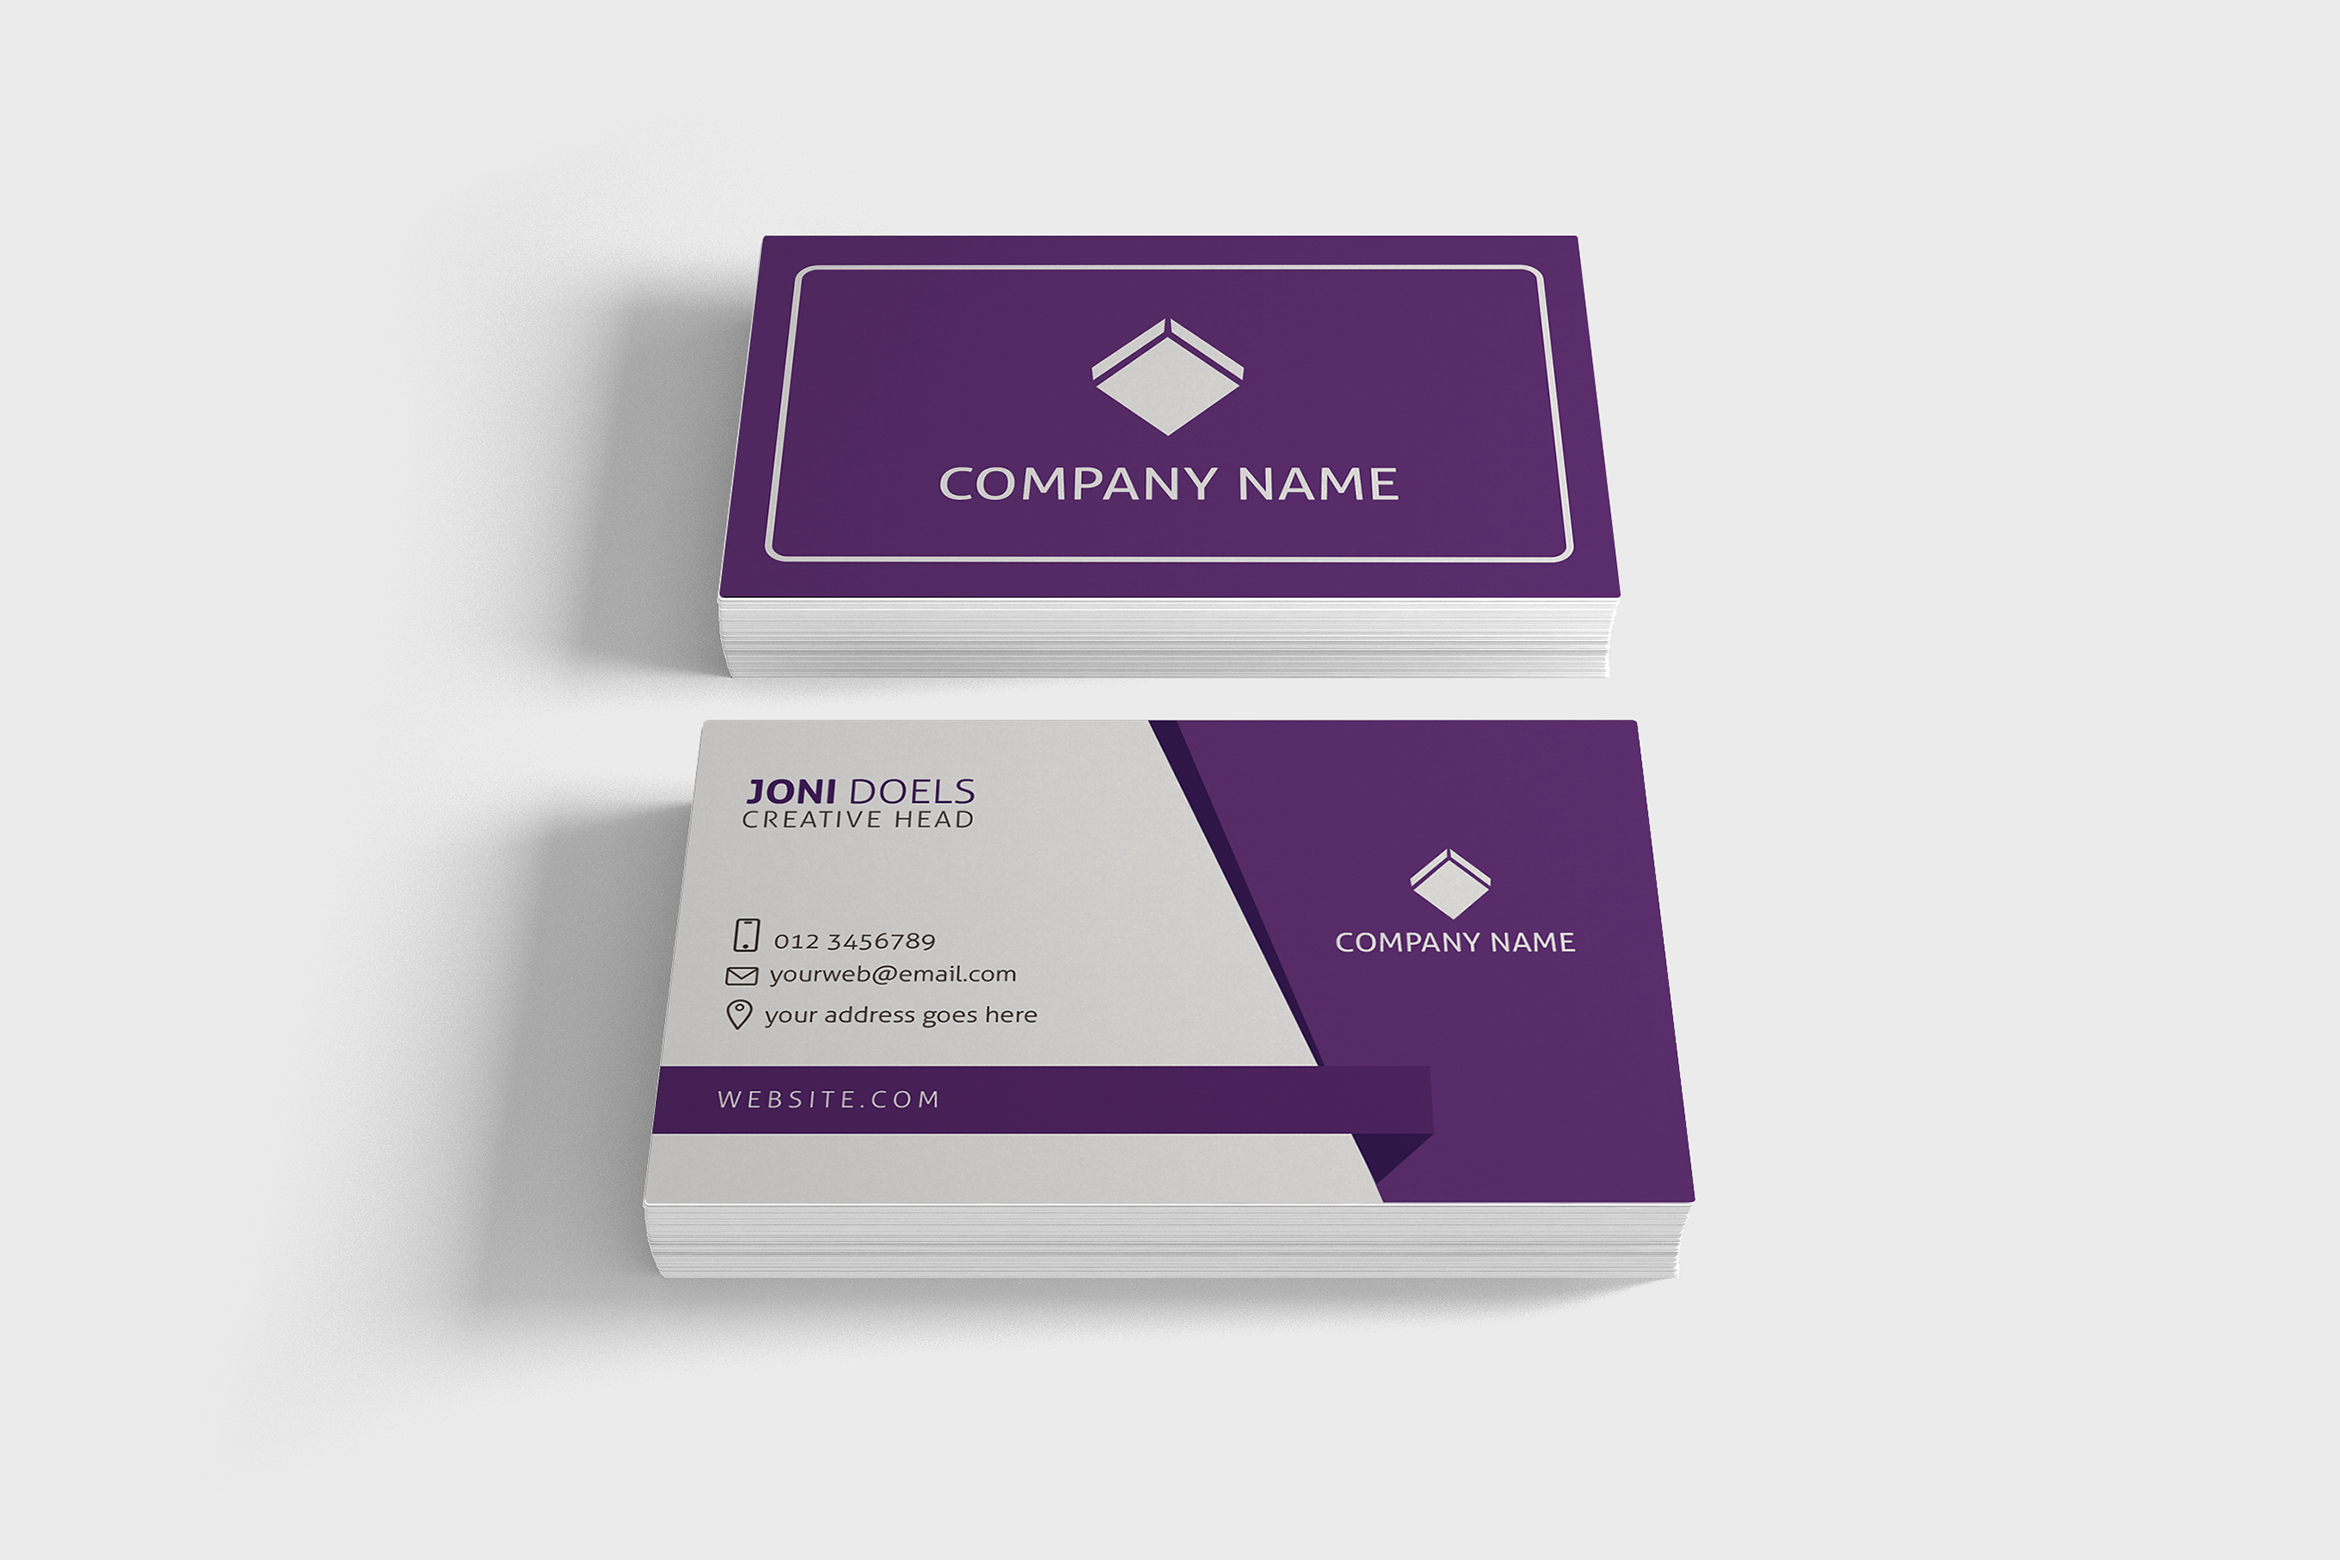 Business Card vol.04 example image 1